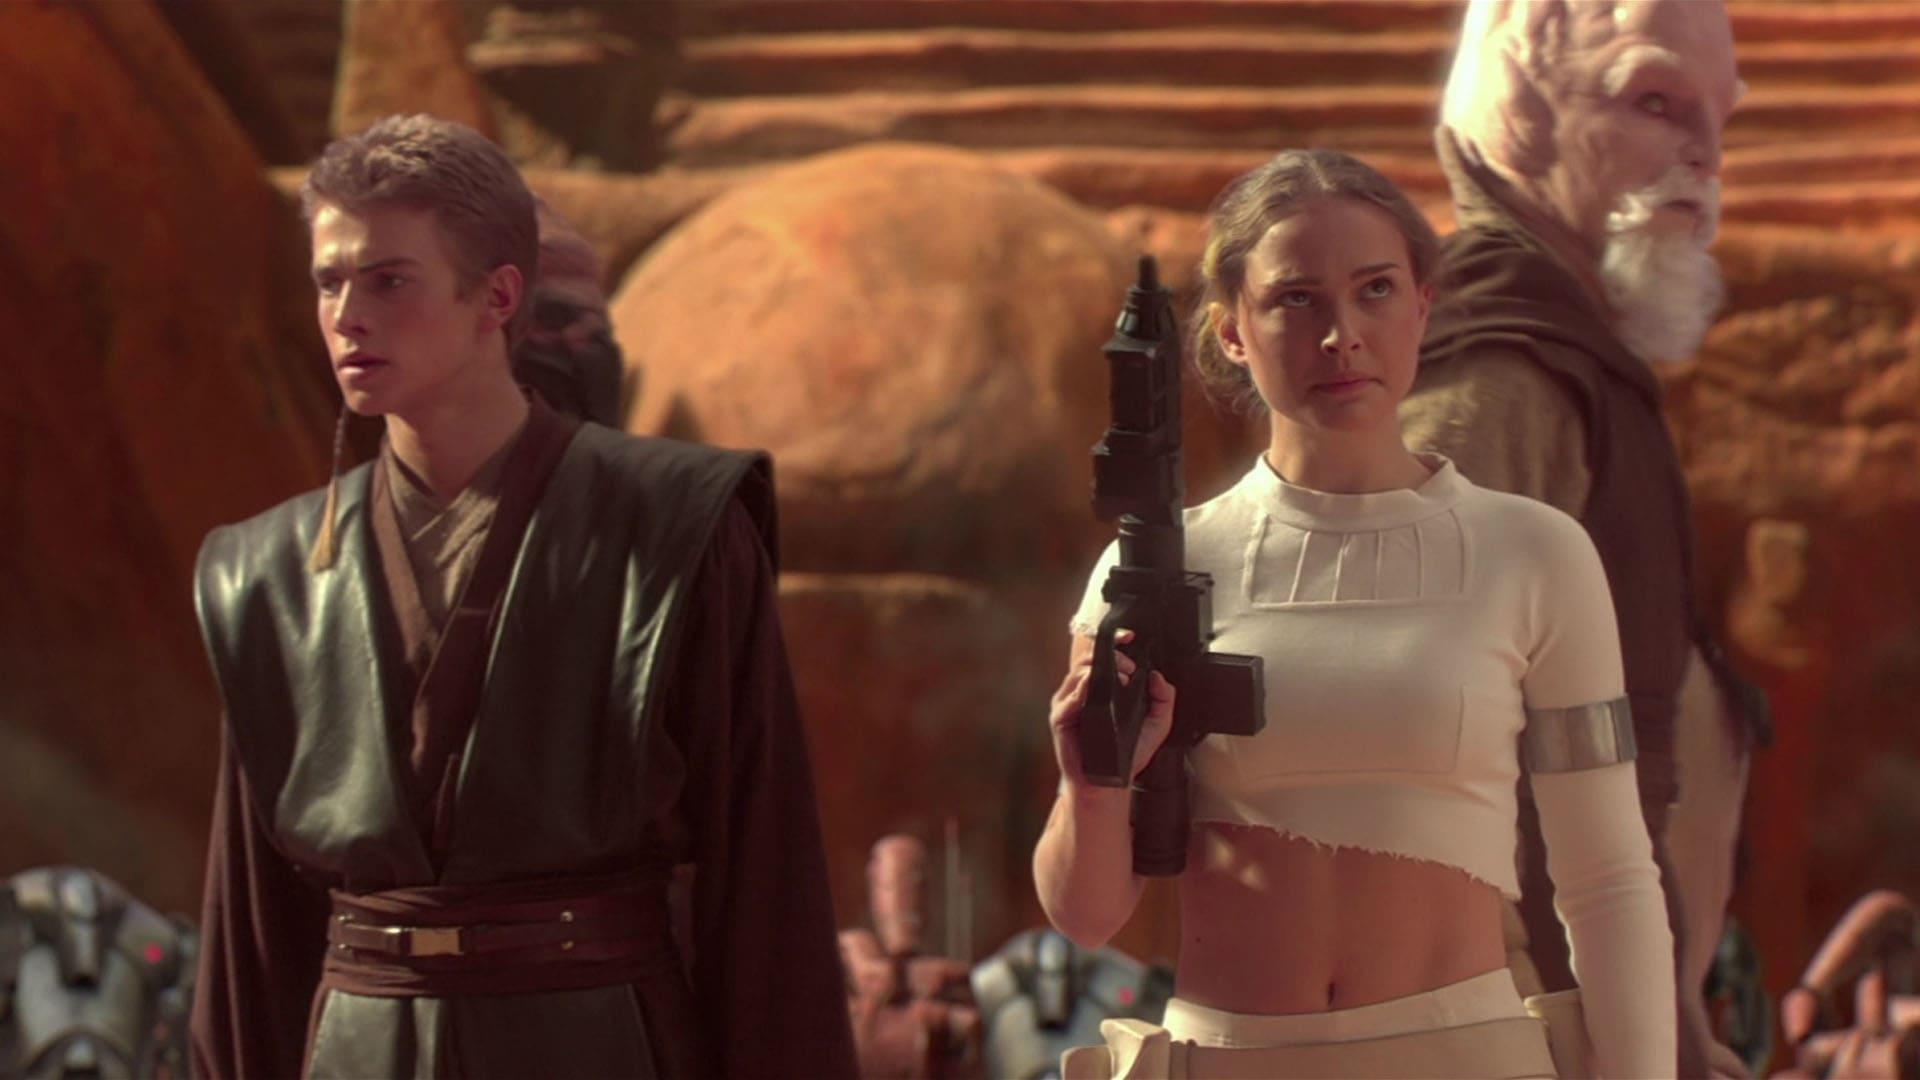 Commentary: The New Star Wars trilogy is worse than the prequels